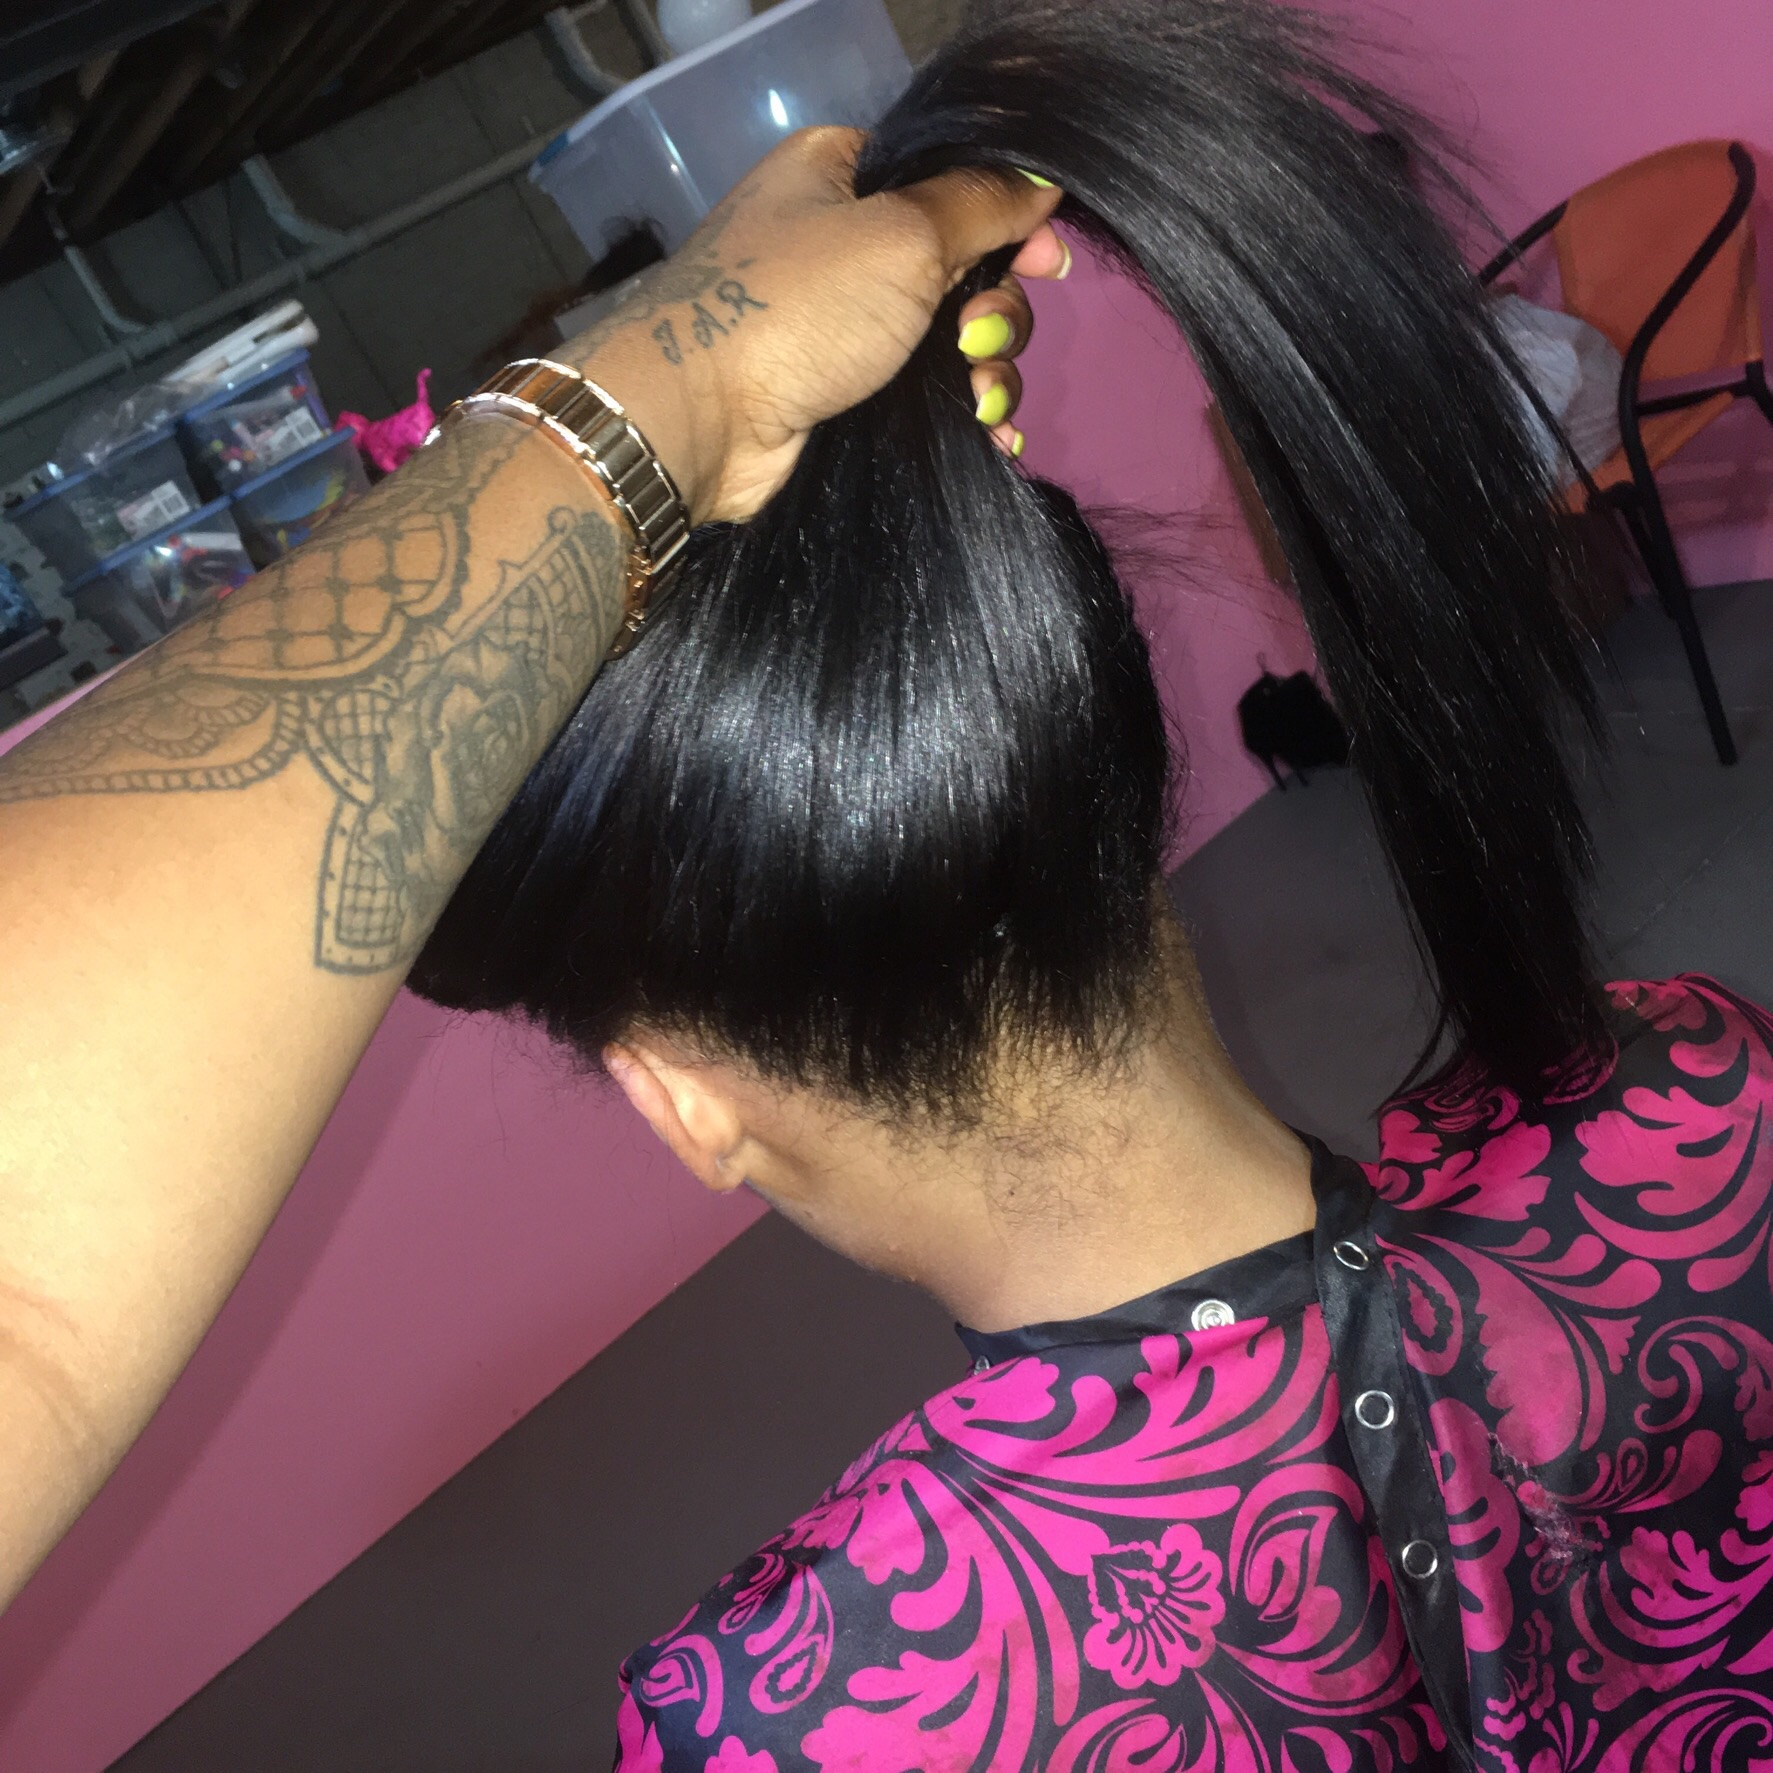 Natural Sewin is wear you leave out 1 or 2 inches around the head and a part of your choice ( longer hair a horse shoe part if you want to part where ever you want). You do not need a relax around the edges if your natural & you can wear a high ponytail or braids in the front 🤗 BOOK ME UPGRADEYOUHAIR NOW! Hair is in stock 16-26 inches and closures for full sewins .